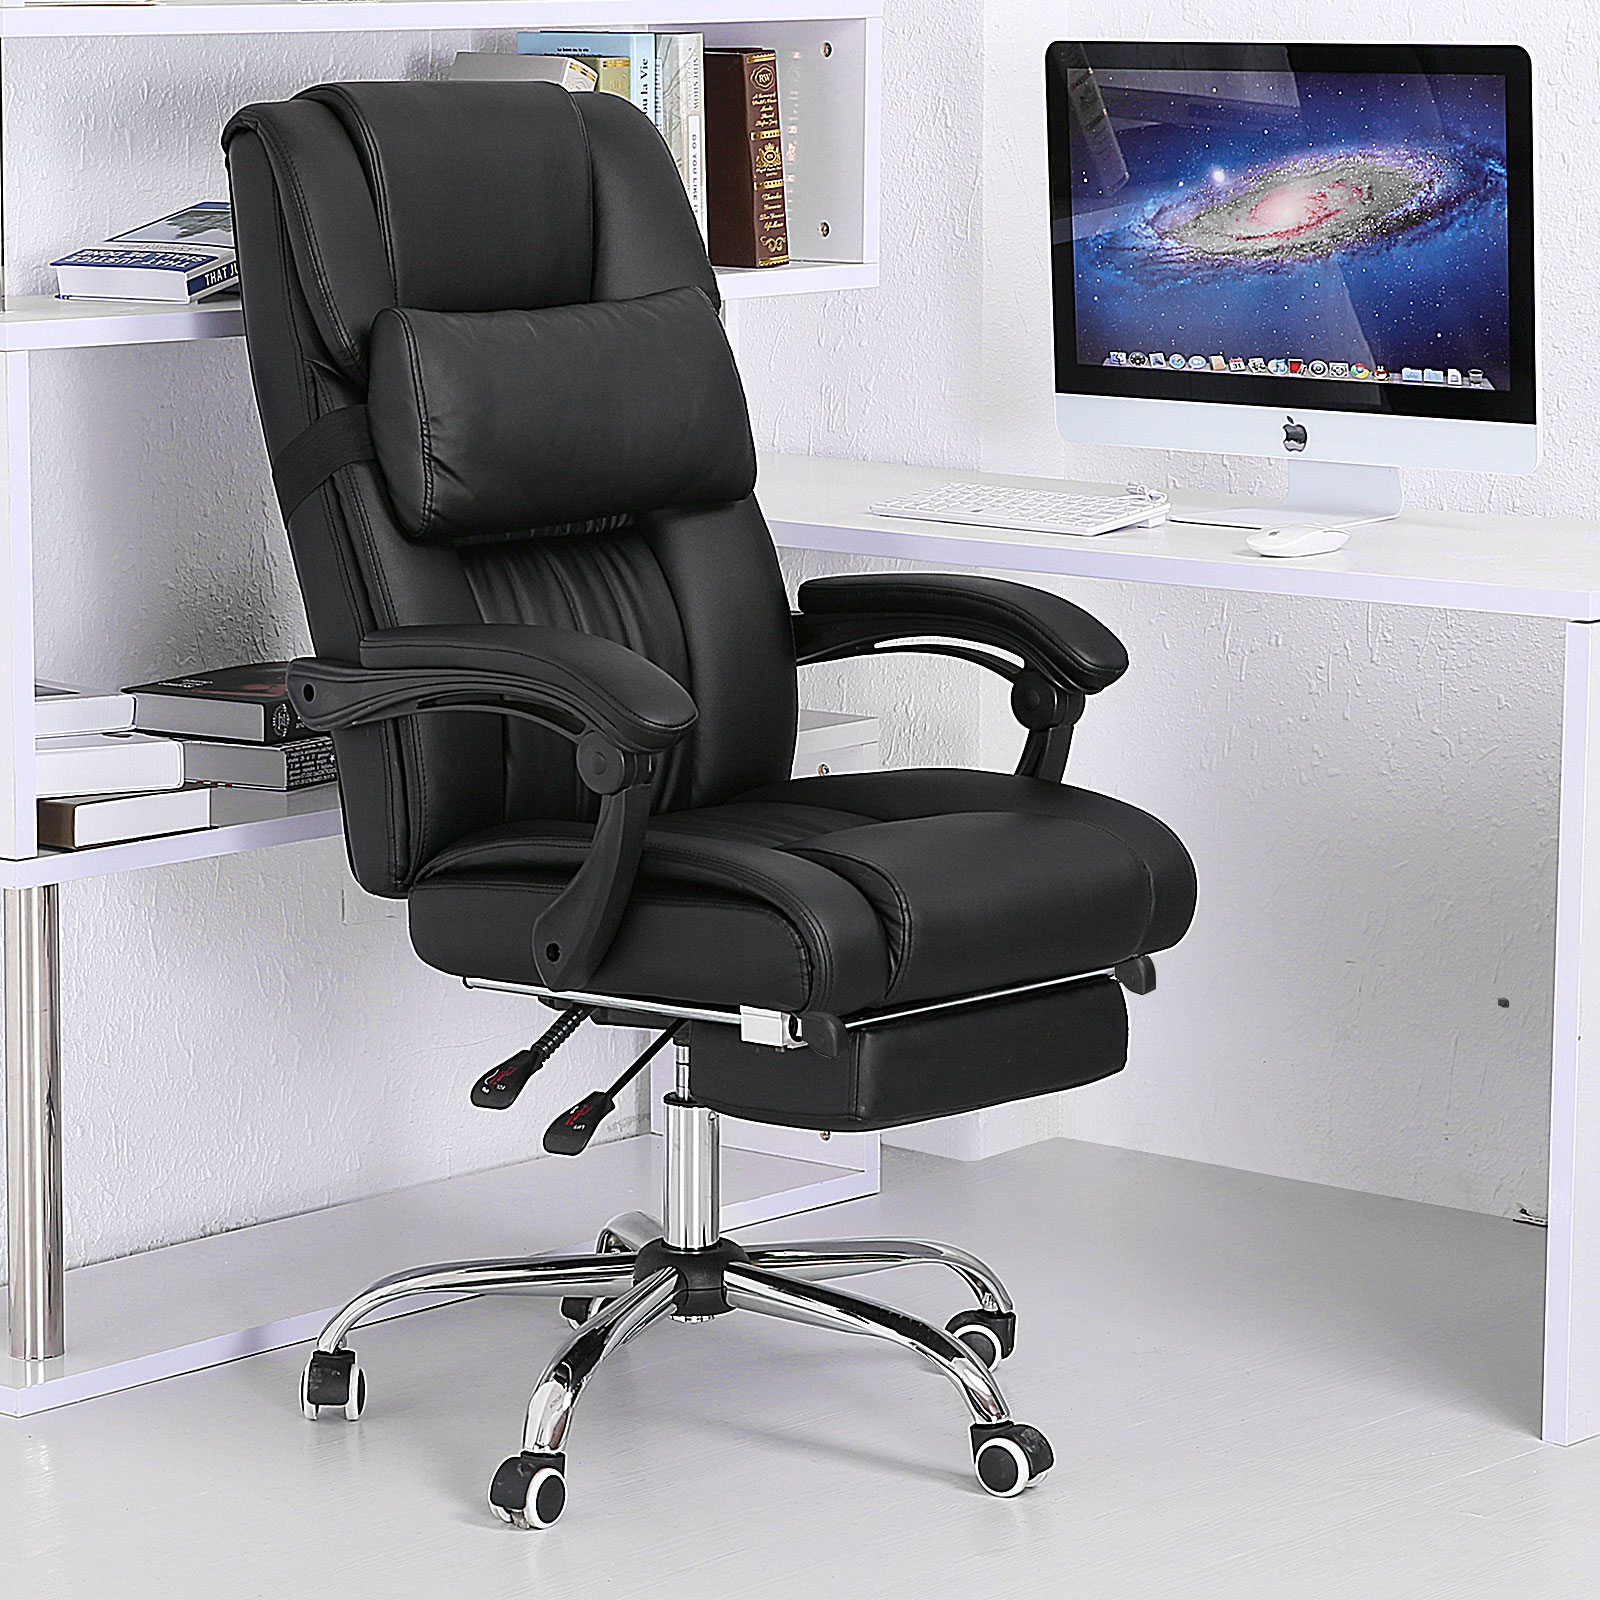 Executive office chair ergonomic high back reclining for Office furniture chairs